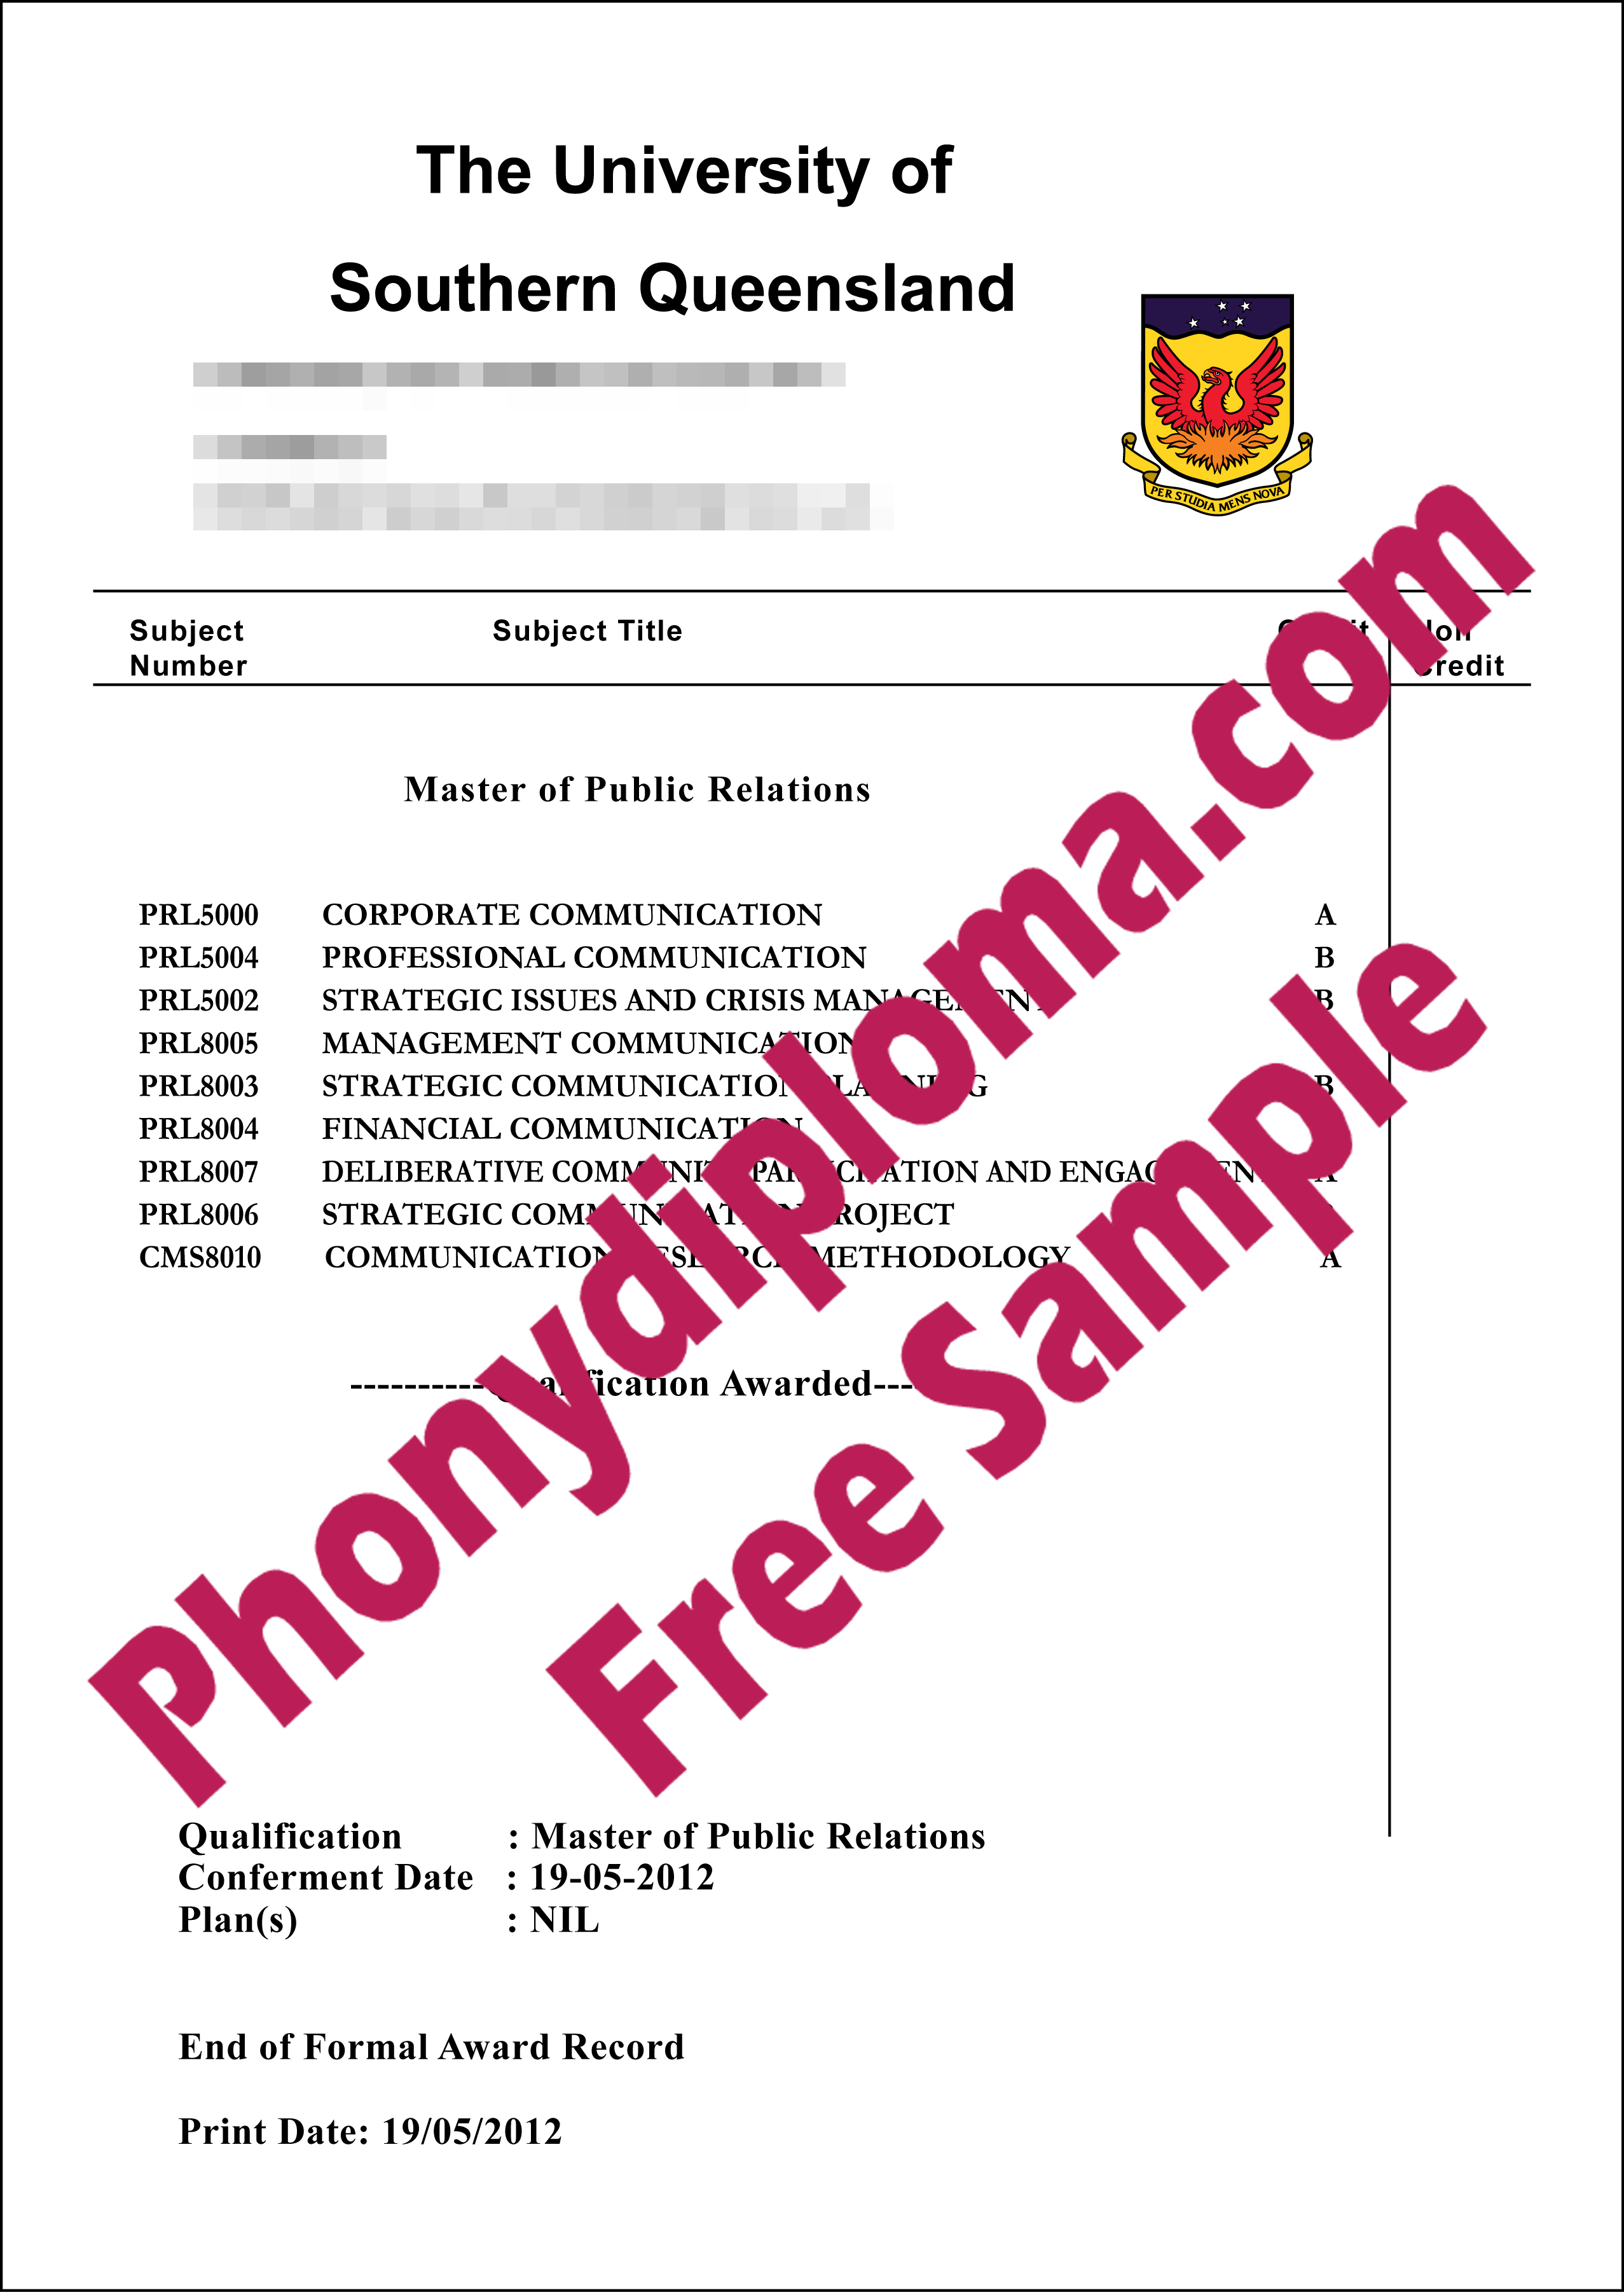 University Of Southern Queensland Actual Match Transcript Free Sample From Phonydiploma (2)